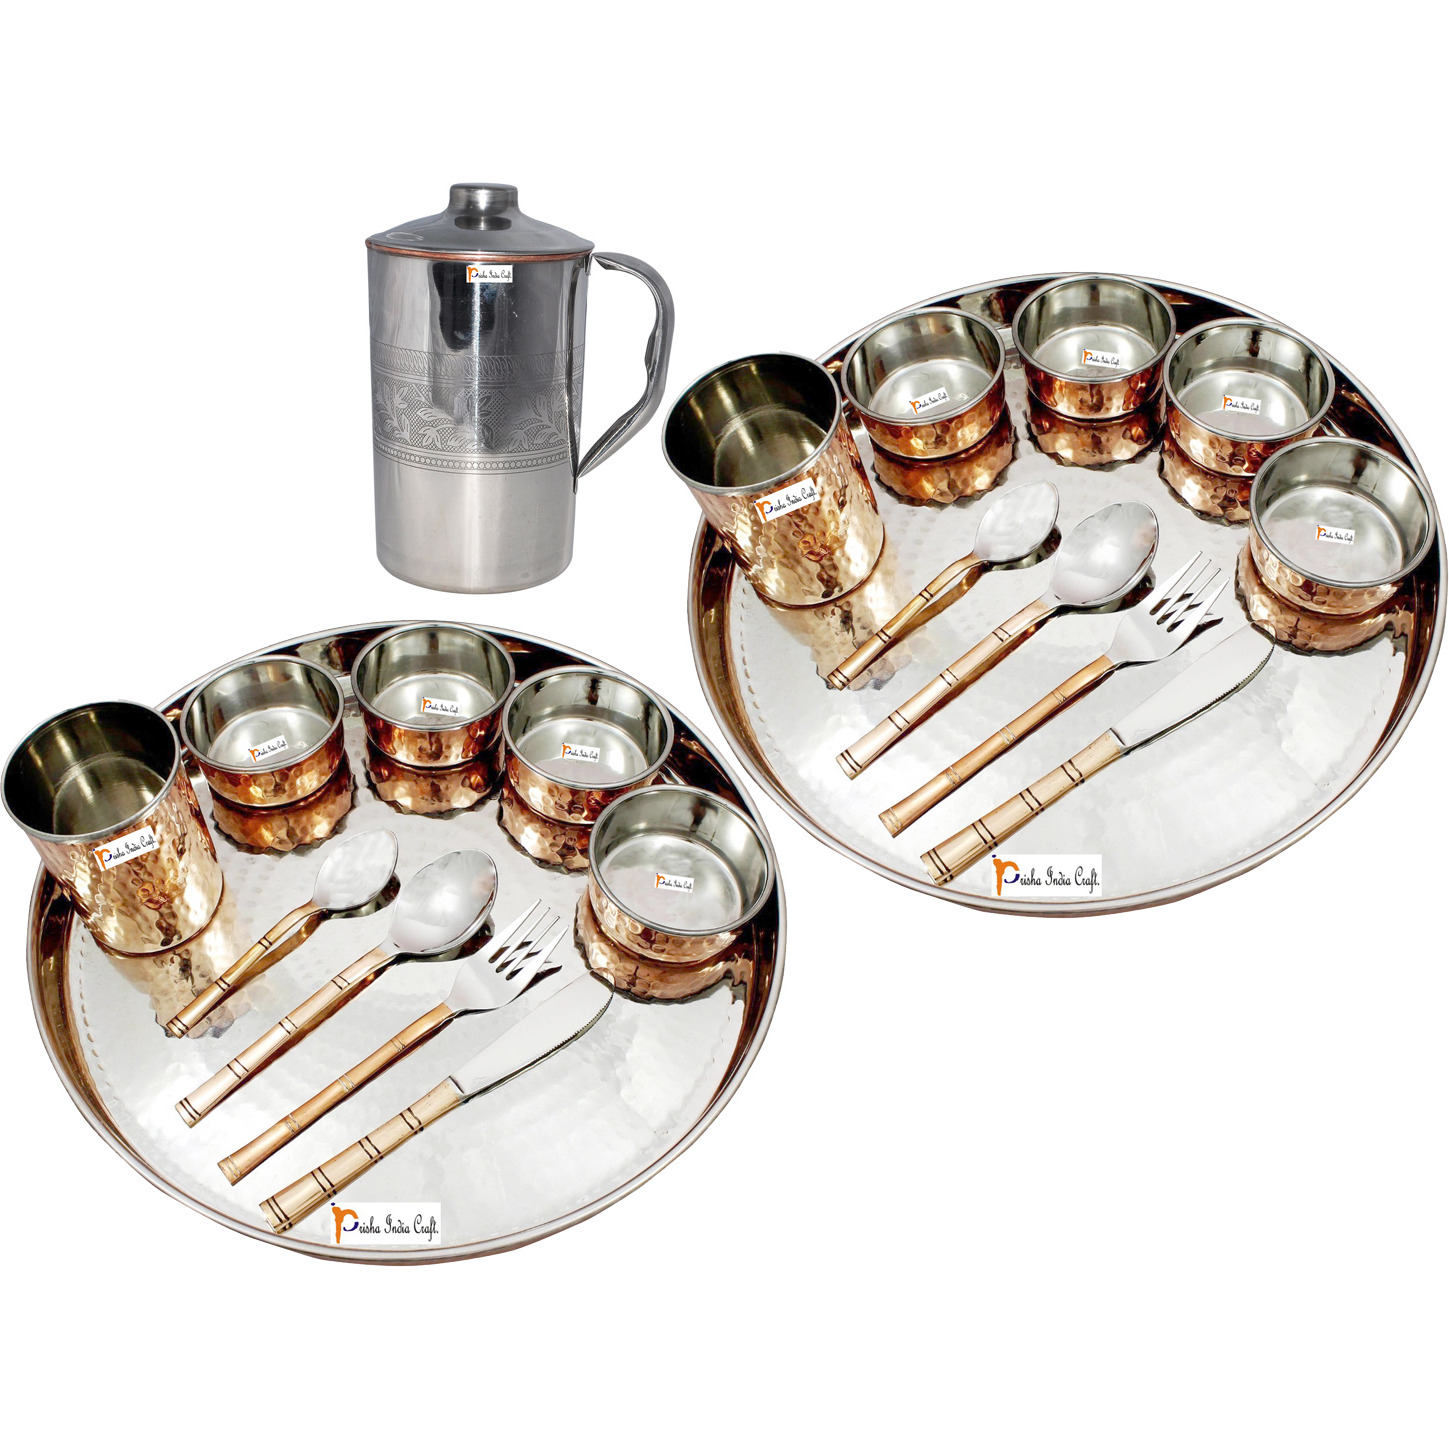 Prisha India Craft B. Set of 2 Dinnerware Traditional Stainless Steel Copper Dinner Set of Thali Plate, Bowls, Glass and Spoons, Dia 13  With 1 Embossed Stainless Steel Copper Pitcher Jug - Christmas Gift